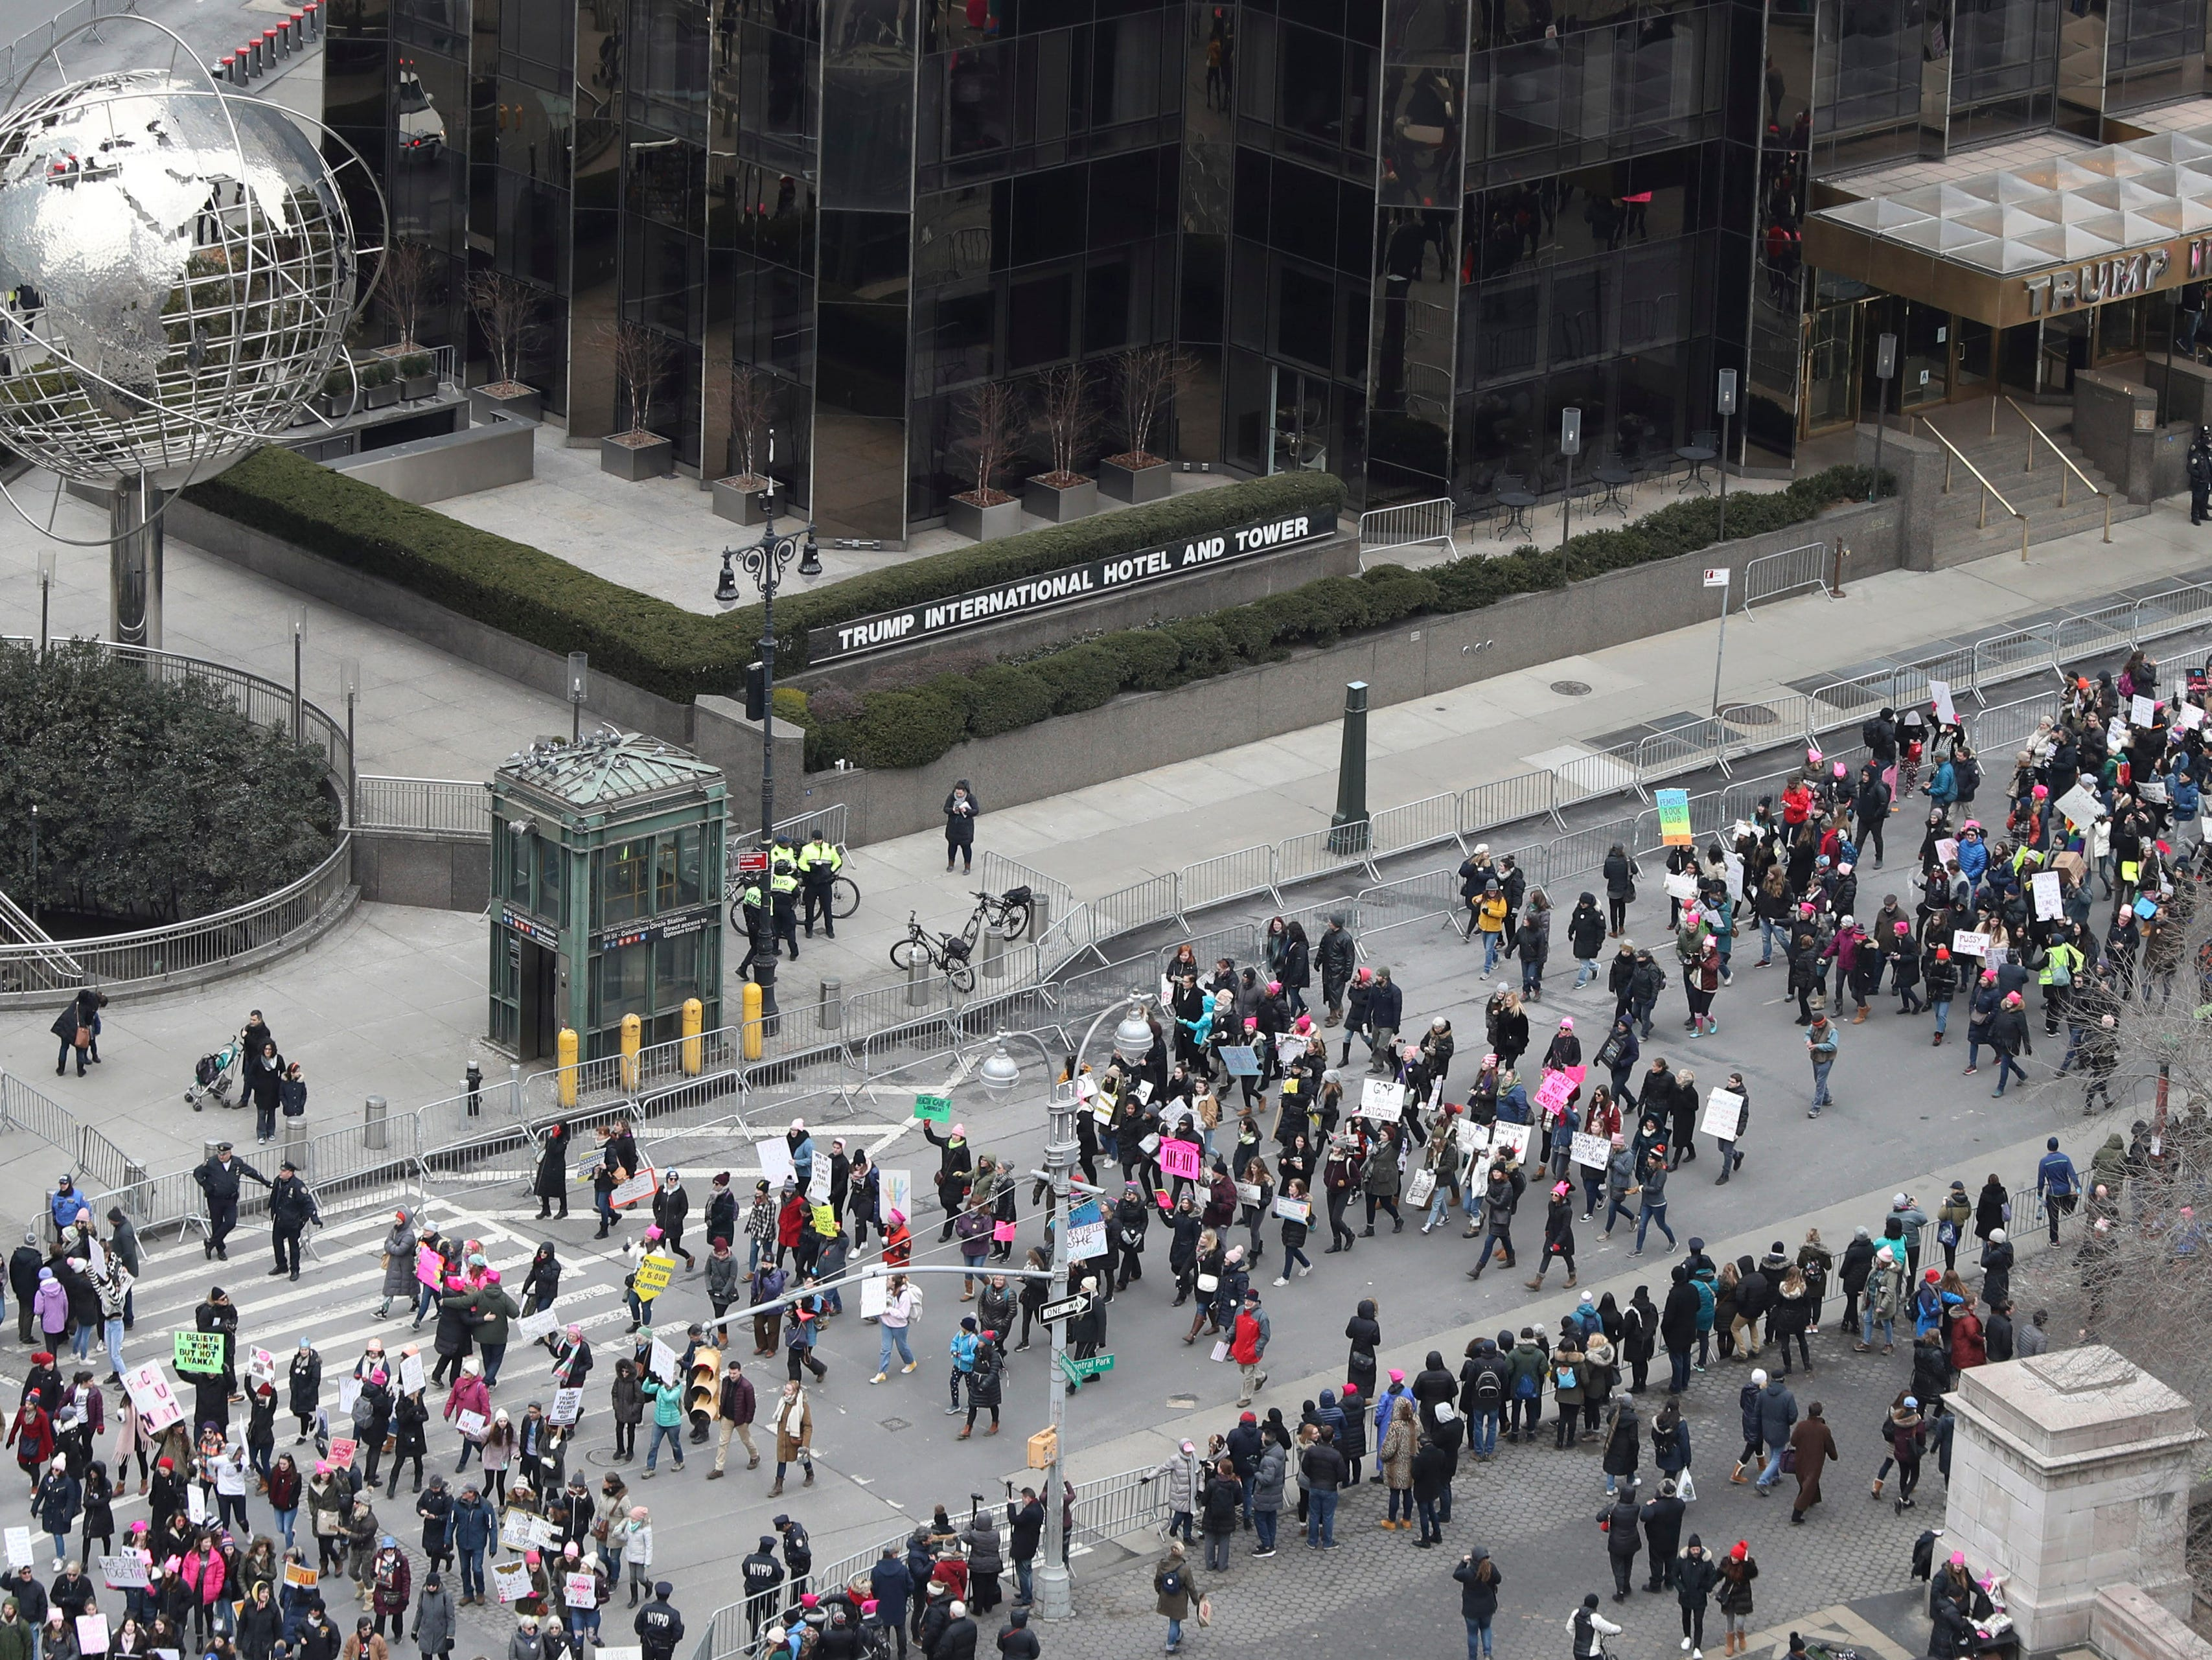 Demonstrators march past the Trump International Hotel and Tower during the Women's March Alliance, Saturday, Jan. 19, 2019, in New York.